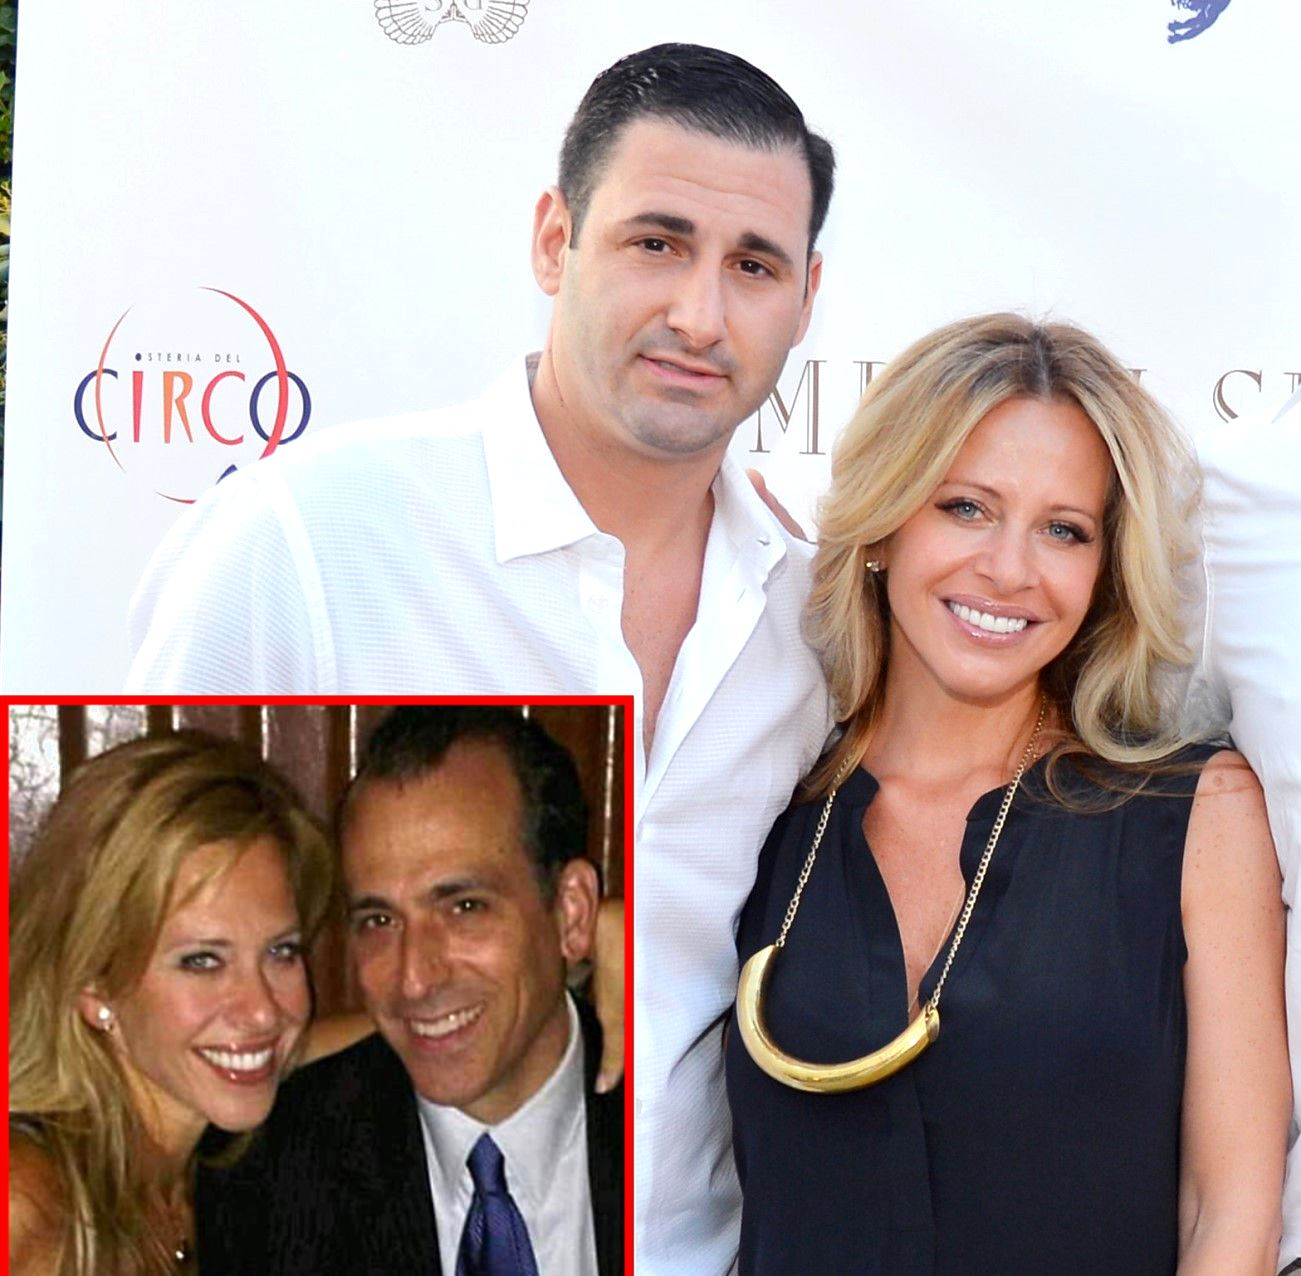 'RHONJ' Dina Manzo's Ex-Husband Tommy Manzo Ordered to Stay Away From Her and Husband Dave After Arrest for Alleged Assault, Has Tommy Posted $100K Bail?